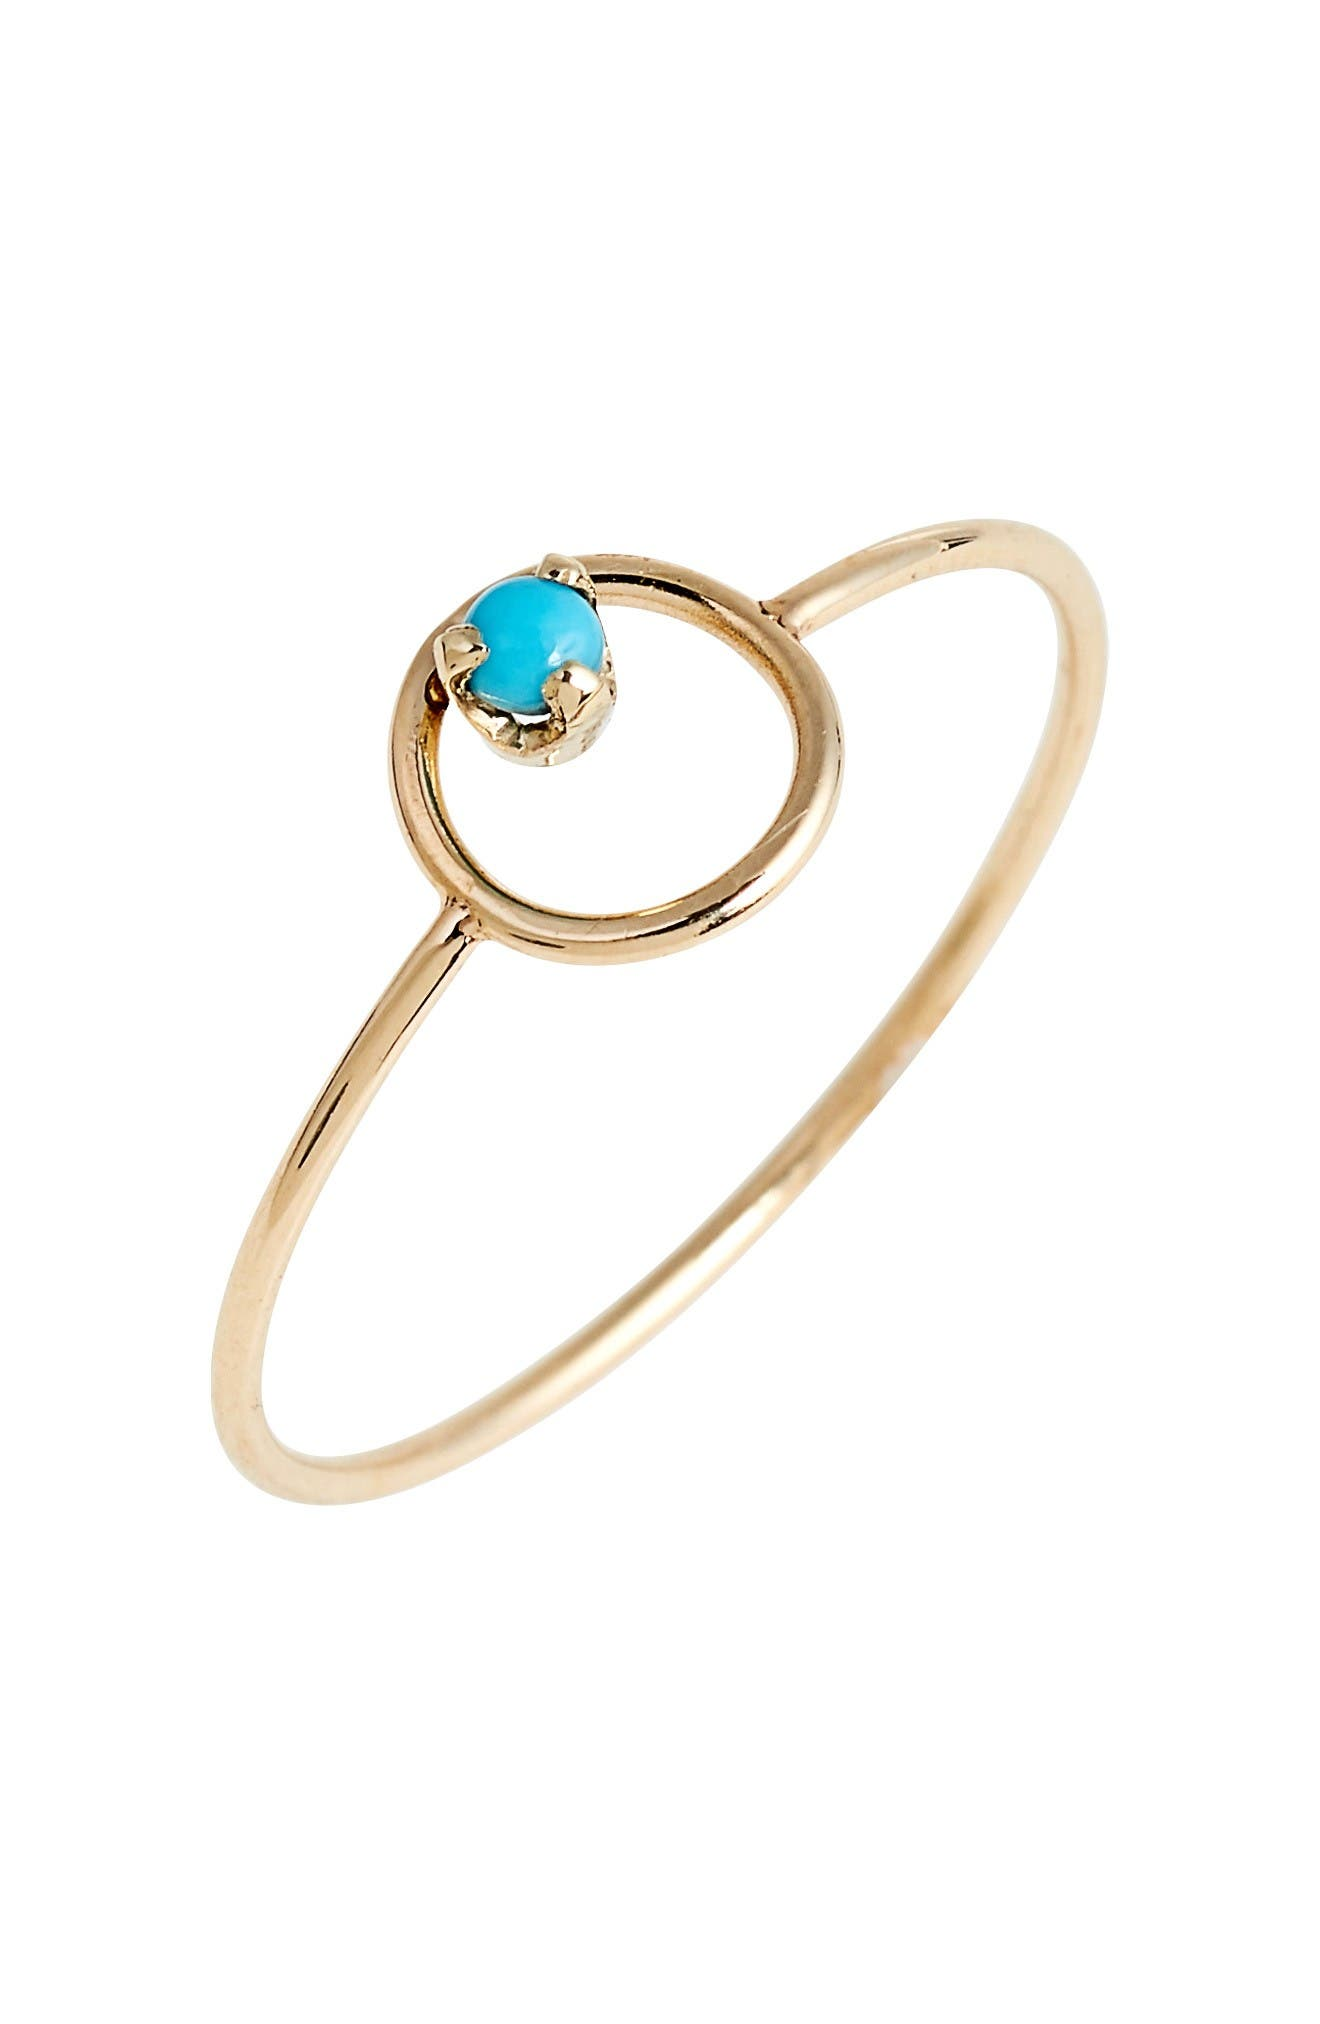 Turquoise Circle Ring,                             Main thumbnail 1, color,                             Yellow Gold/ Turquoise